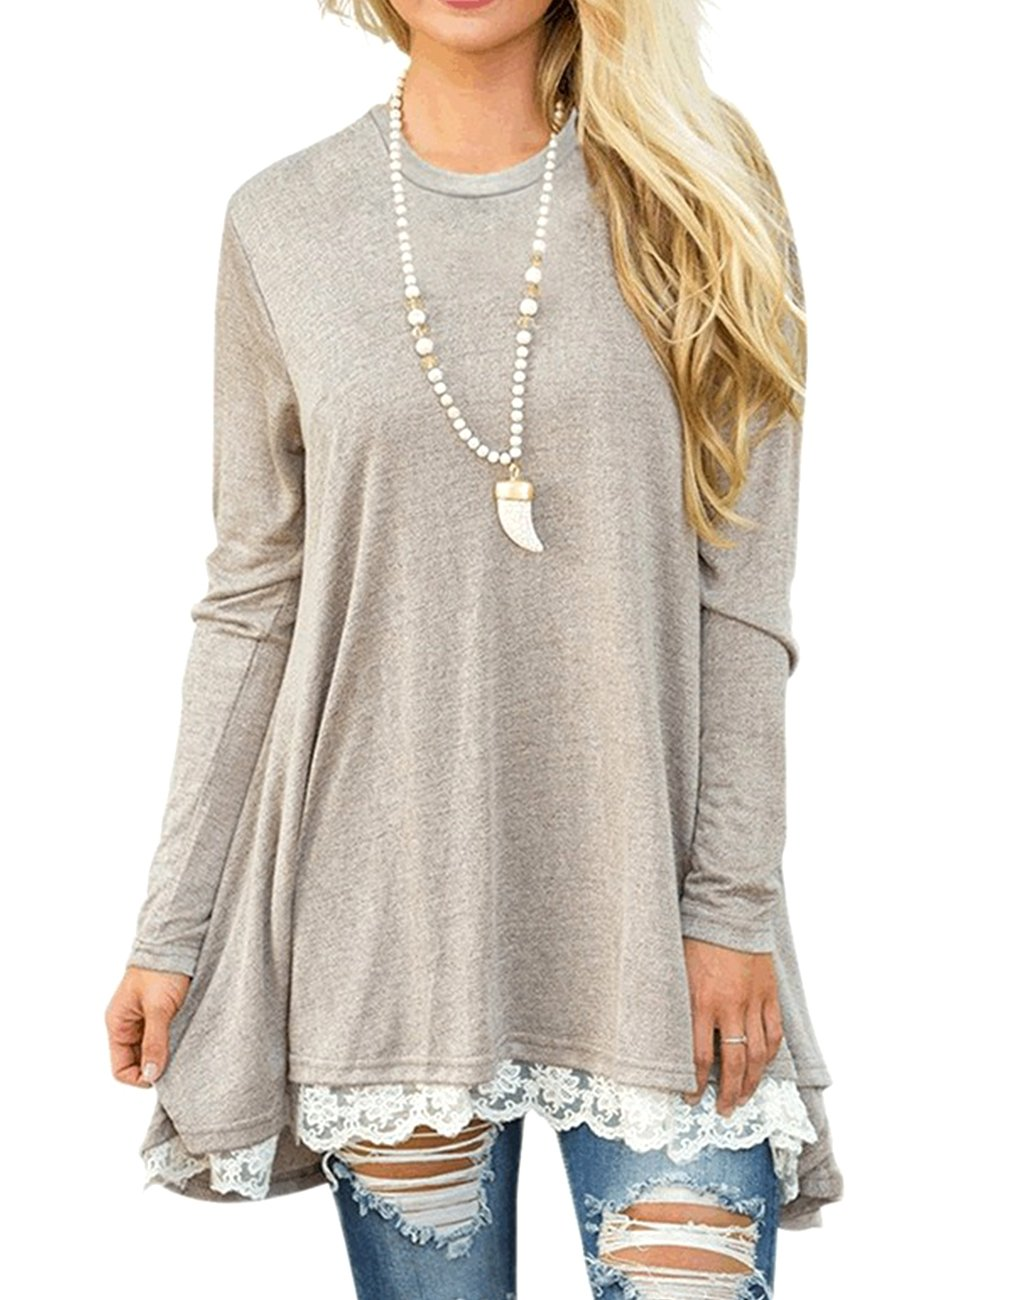 Miskely Women's Long Sleeve Lace Tunic Tops Round Neck Loose Blouse Casual Swing Cotton T-Shirt for Leggings (L, Light Khaki) by Miskely (Image #2)